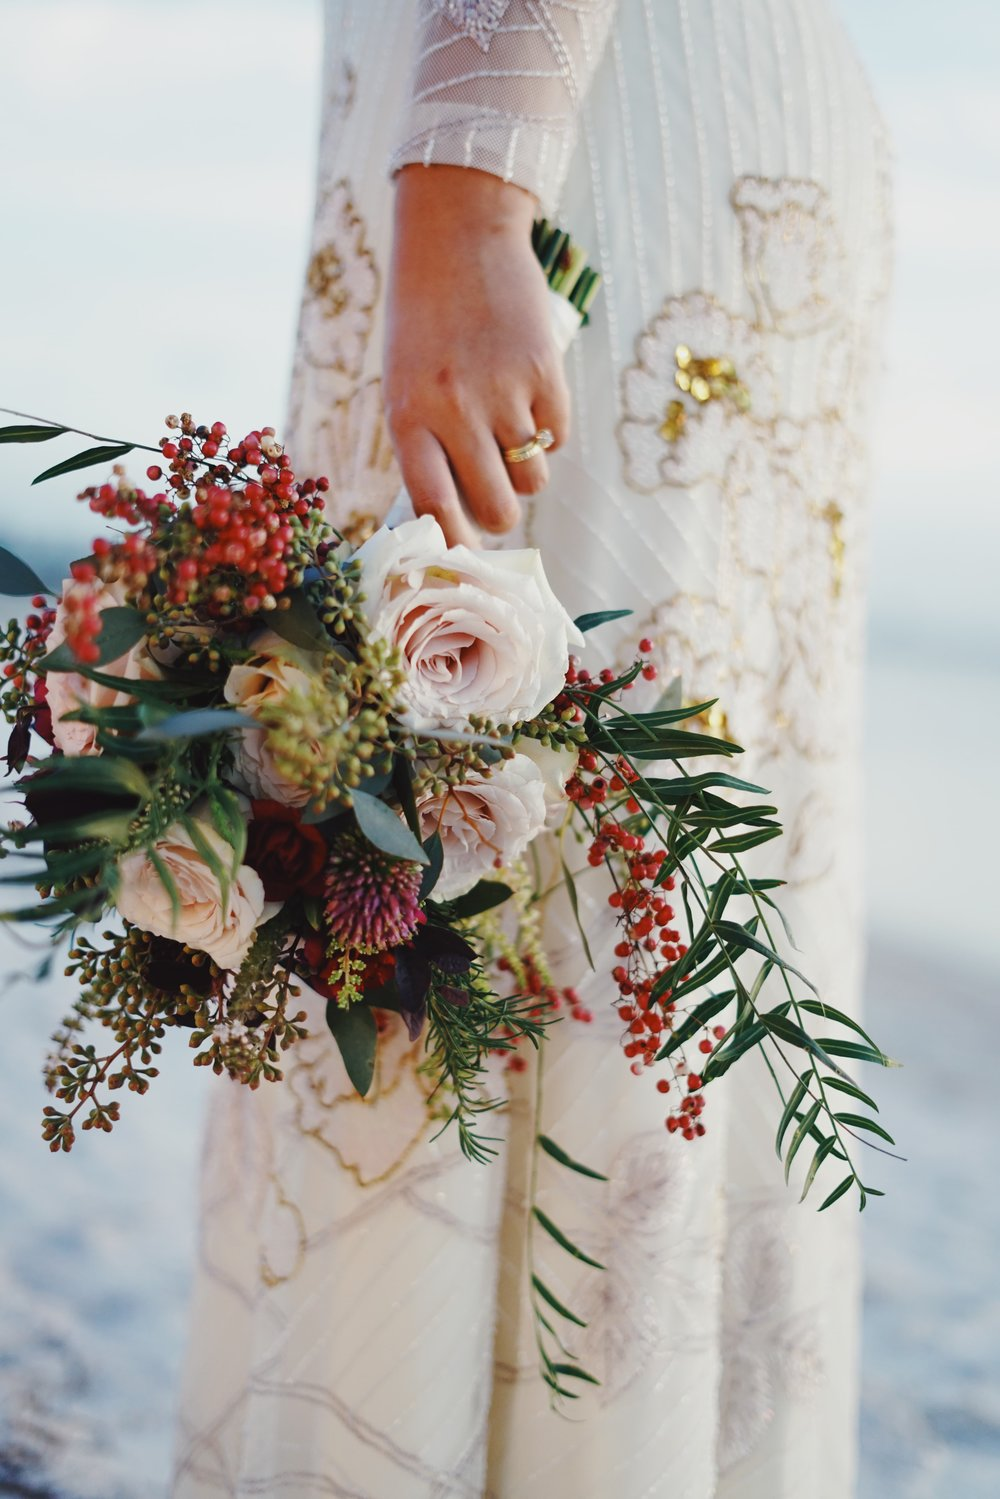 CONSIGN YOUR WEDDING DRESS IN sAN jOSE